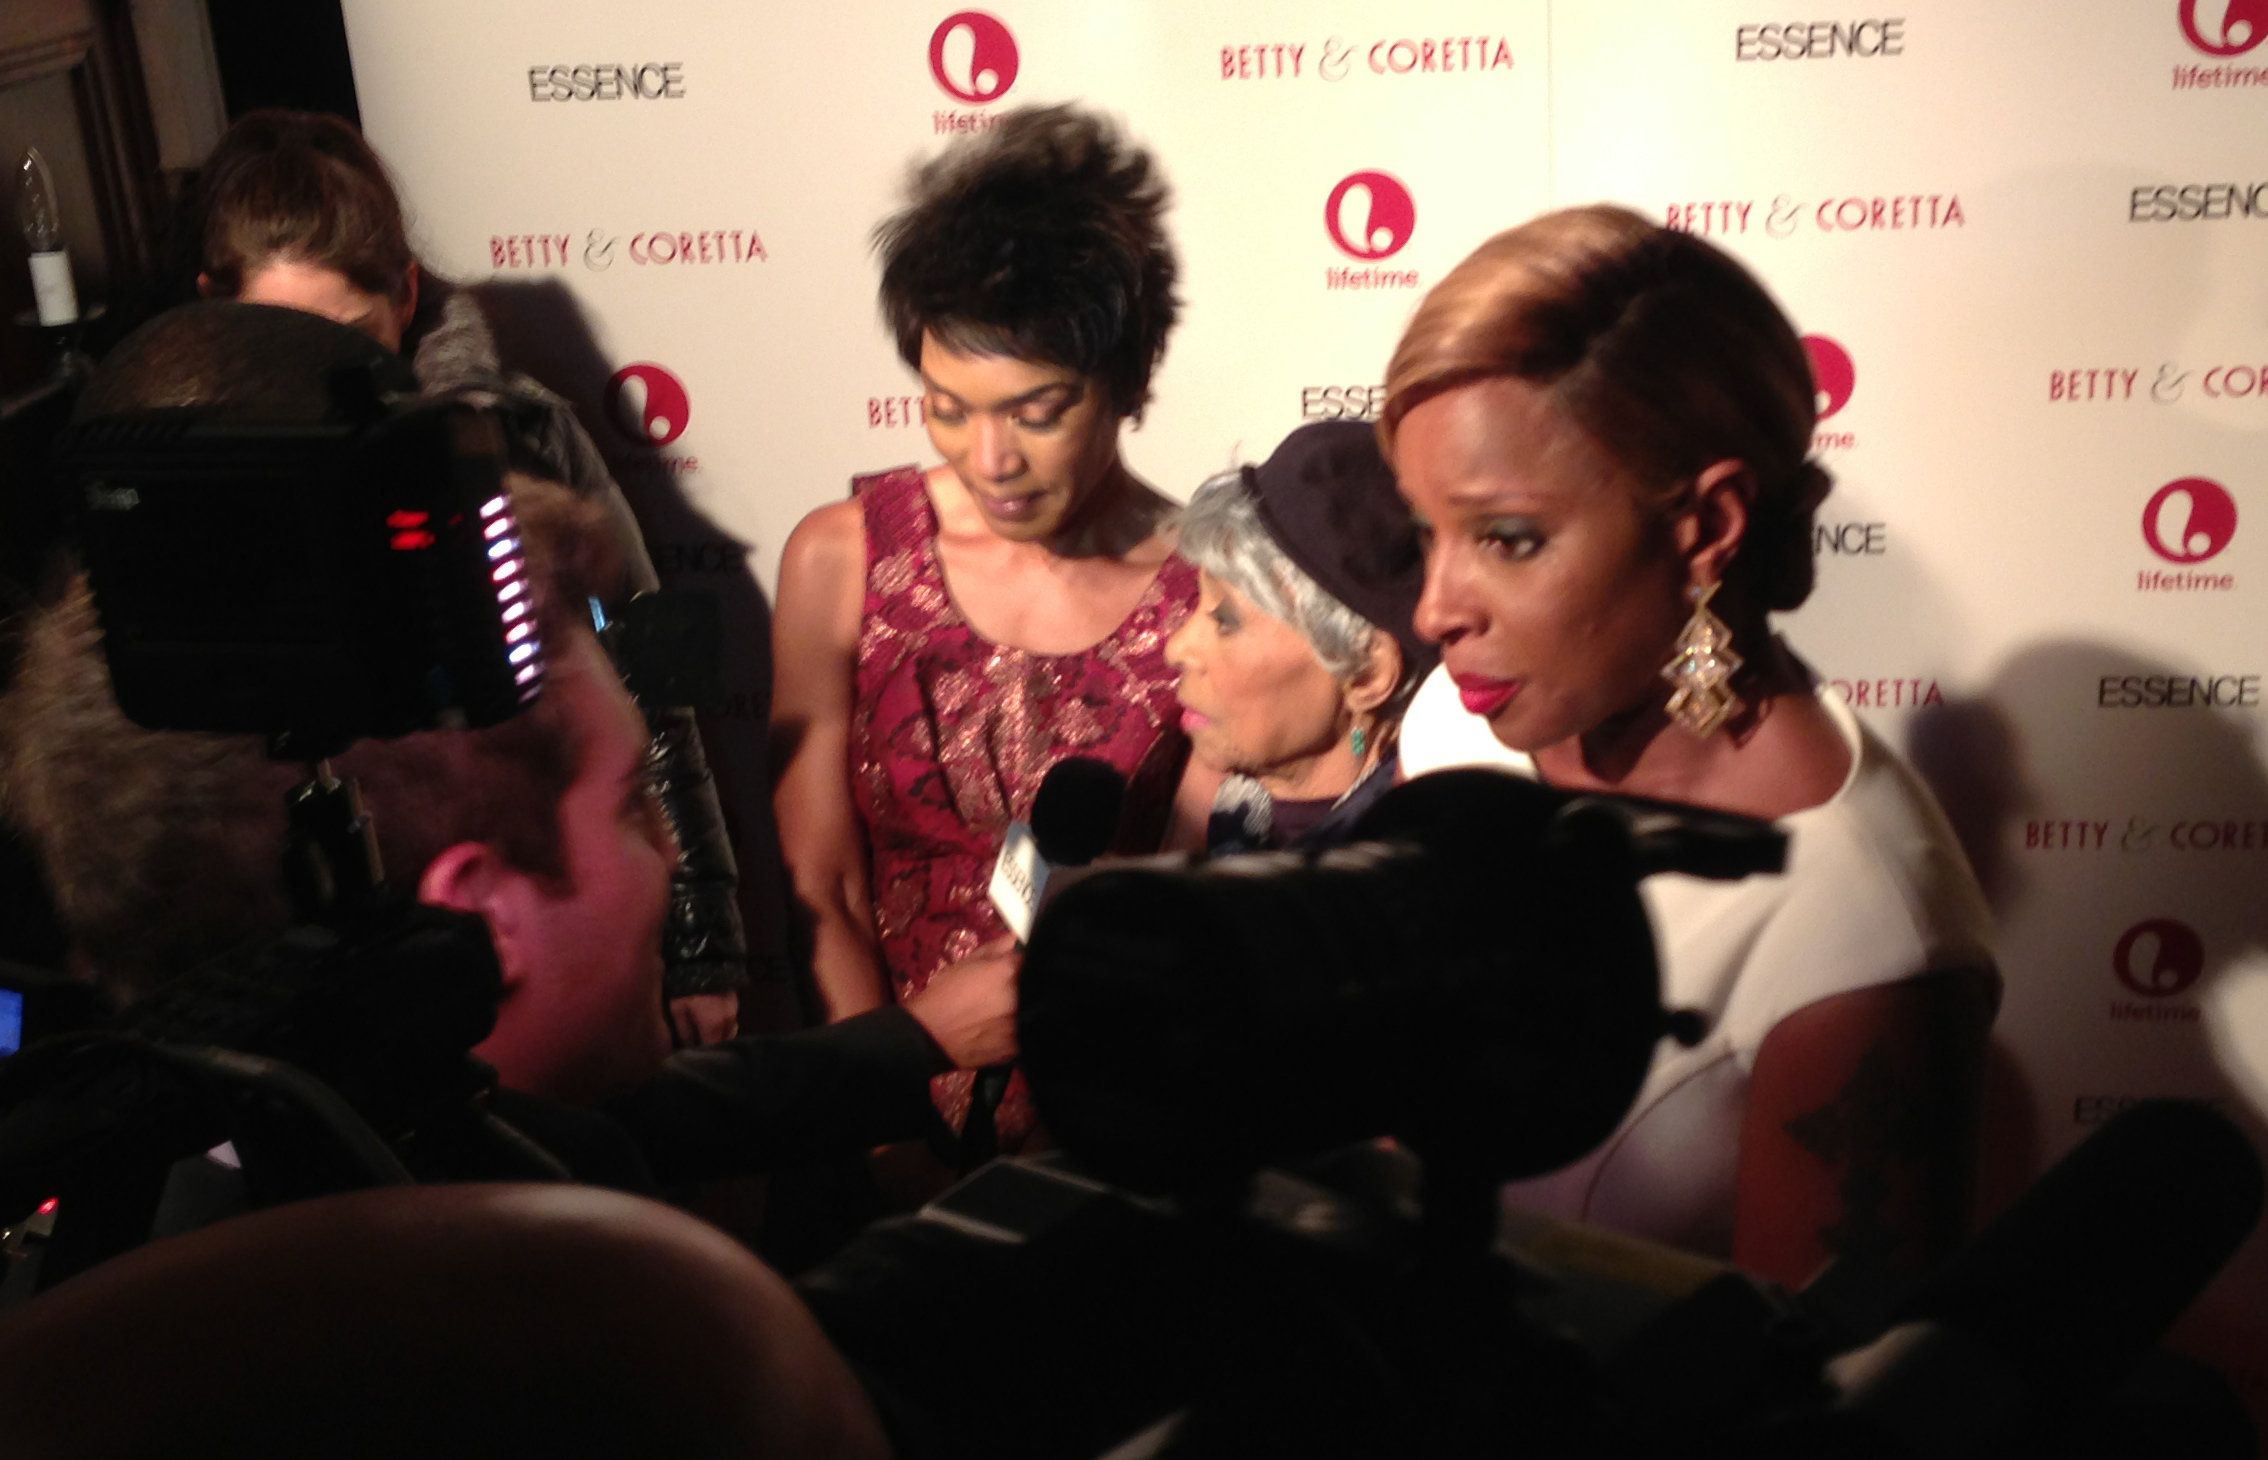 Max Curious Pro shooting red carpet for Lifetime's premiere of Betty & Coretta. Lifetime's Ben Asher doing the interviewing. Anneliese Paull on camera and Dafydd Cooksey on sound.